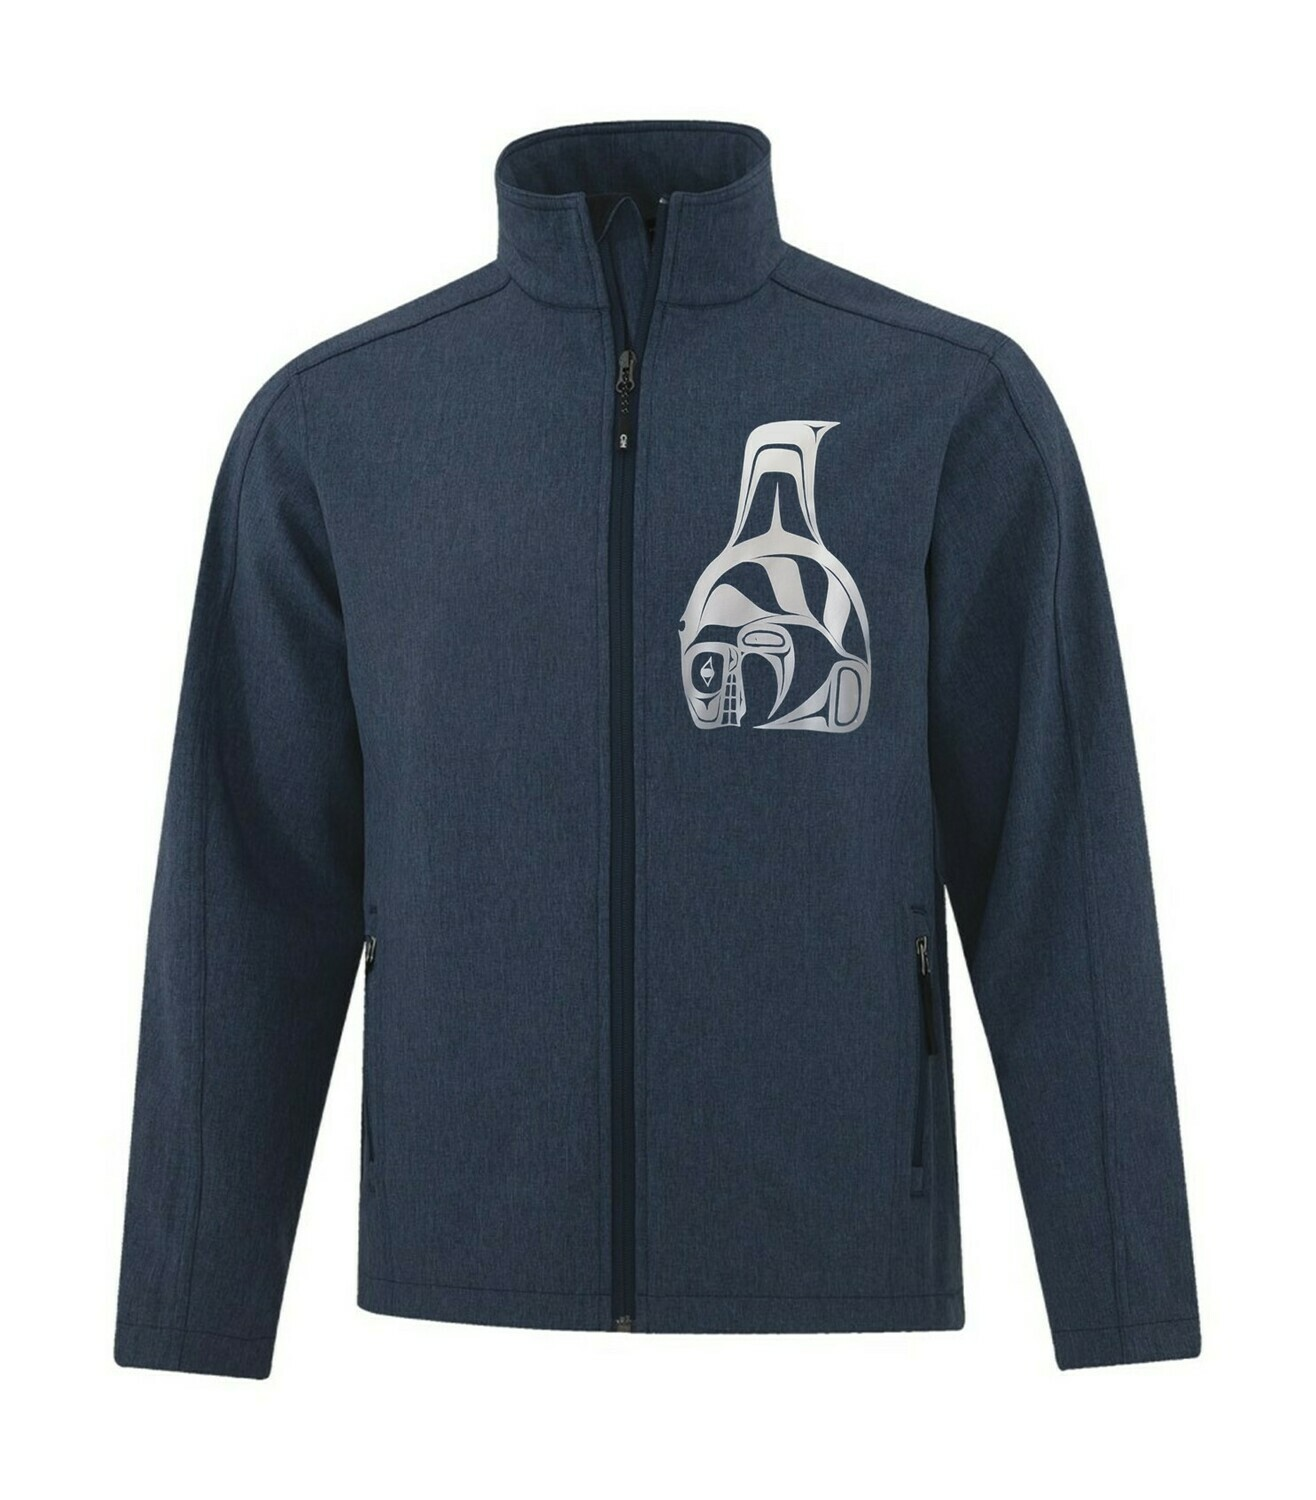 Killerwhale Softshell Jacket - Navy Heather